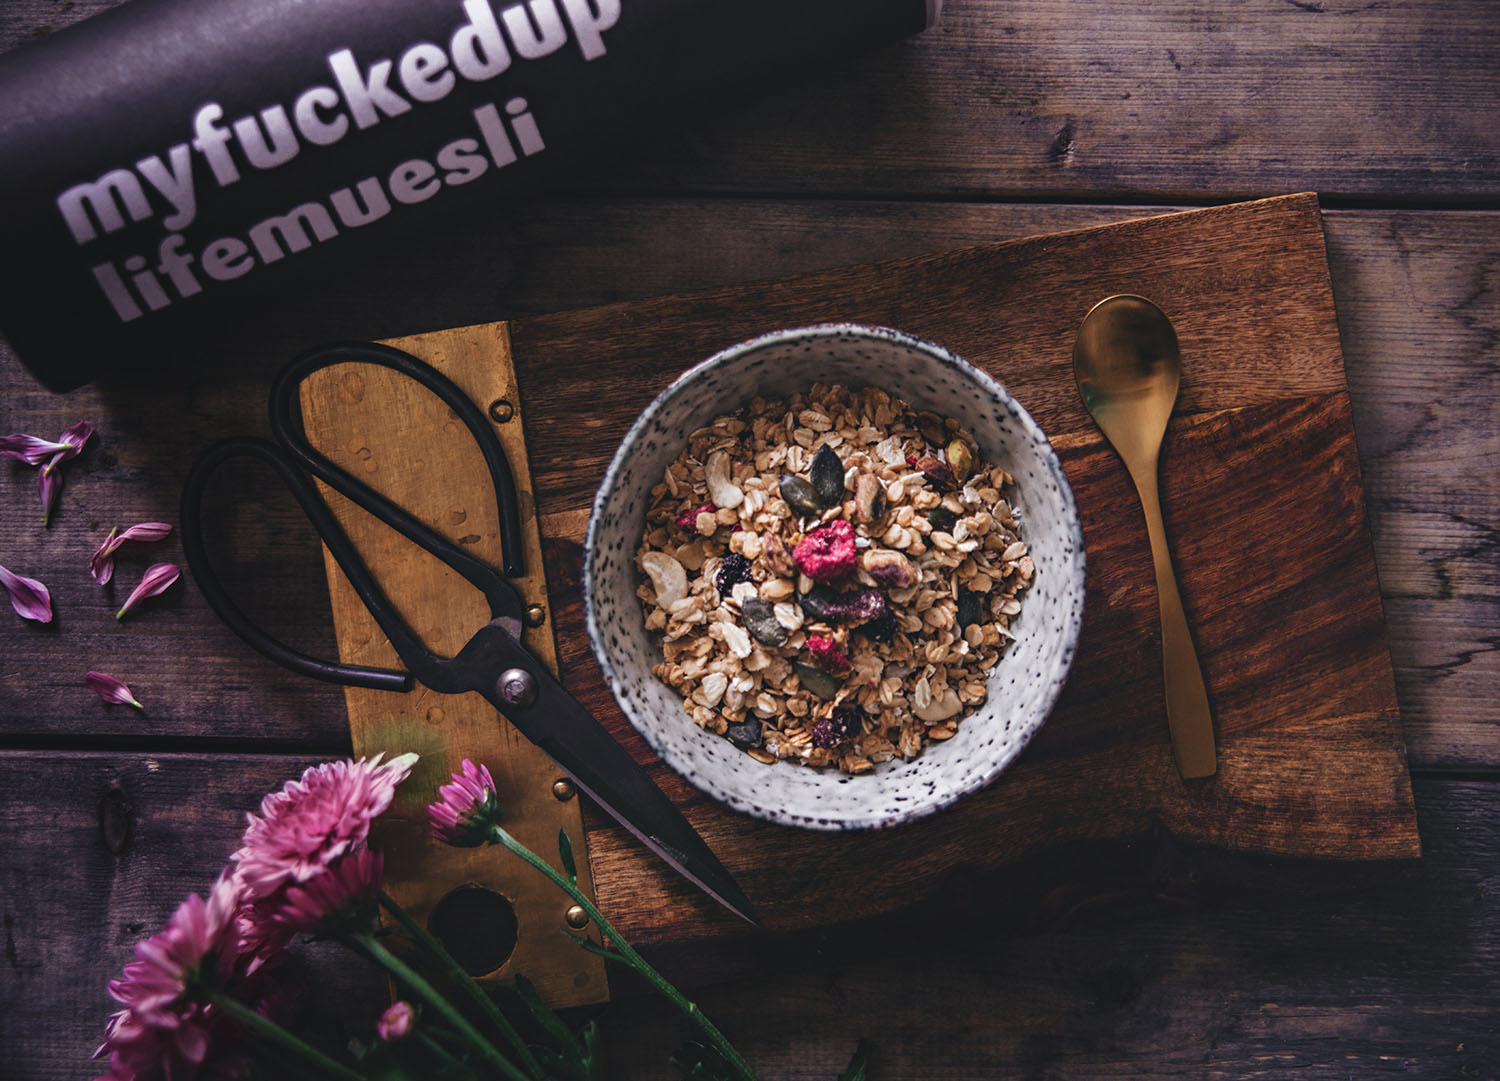 Breakfast flatlay with Myfuckeduplife muesli - mix your own müsli